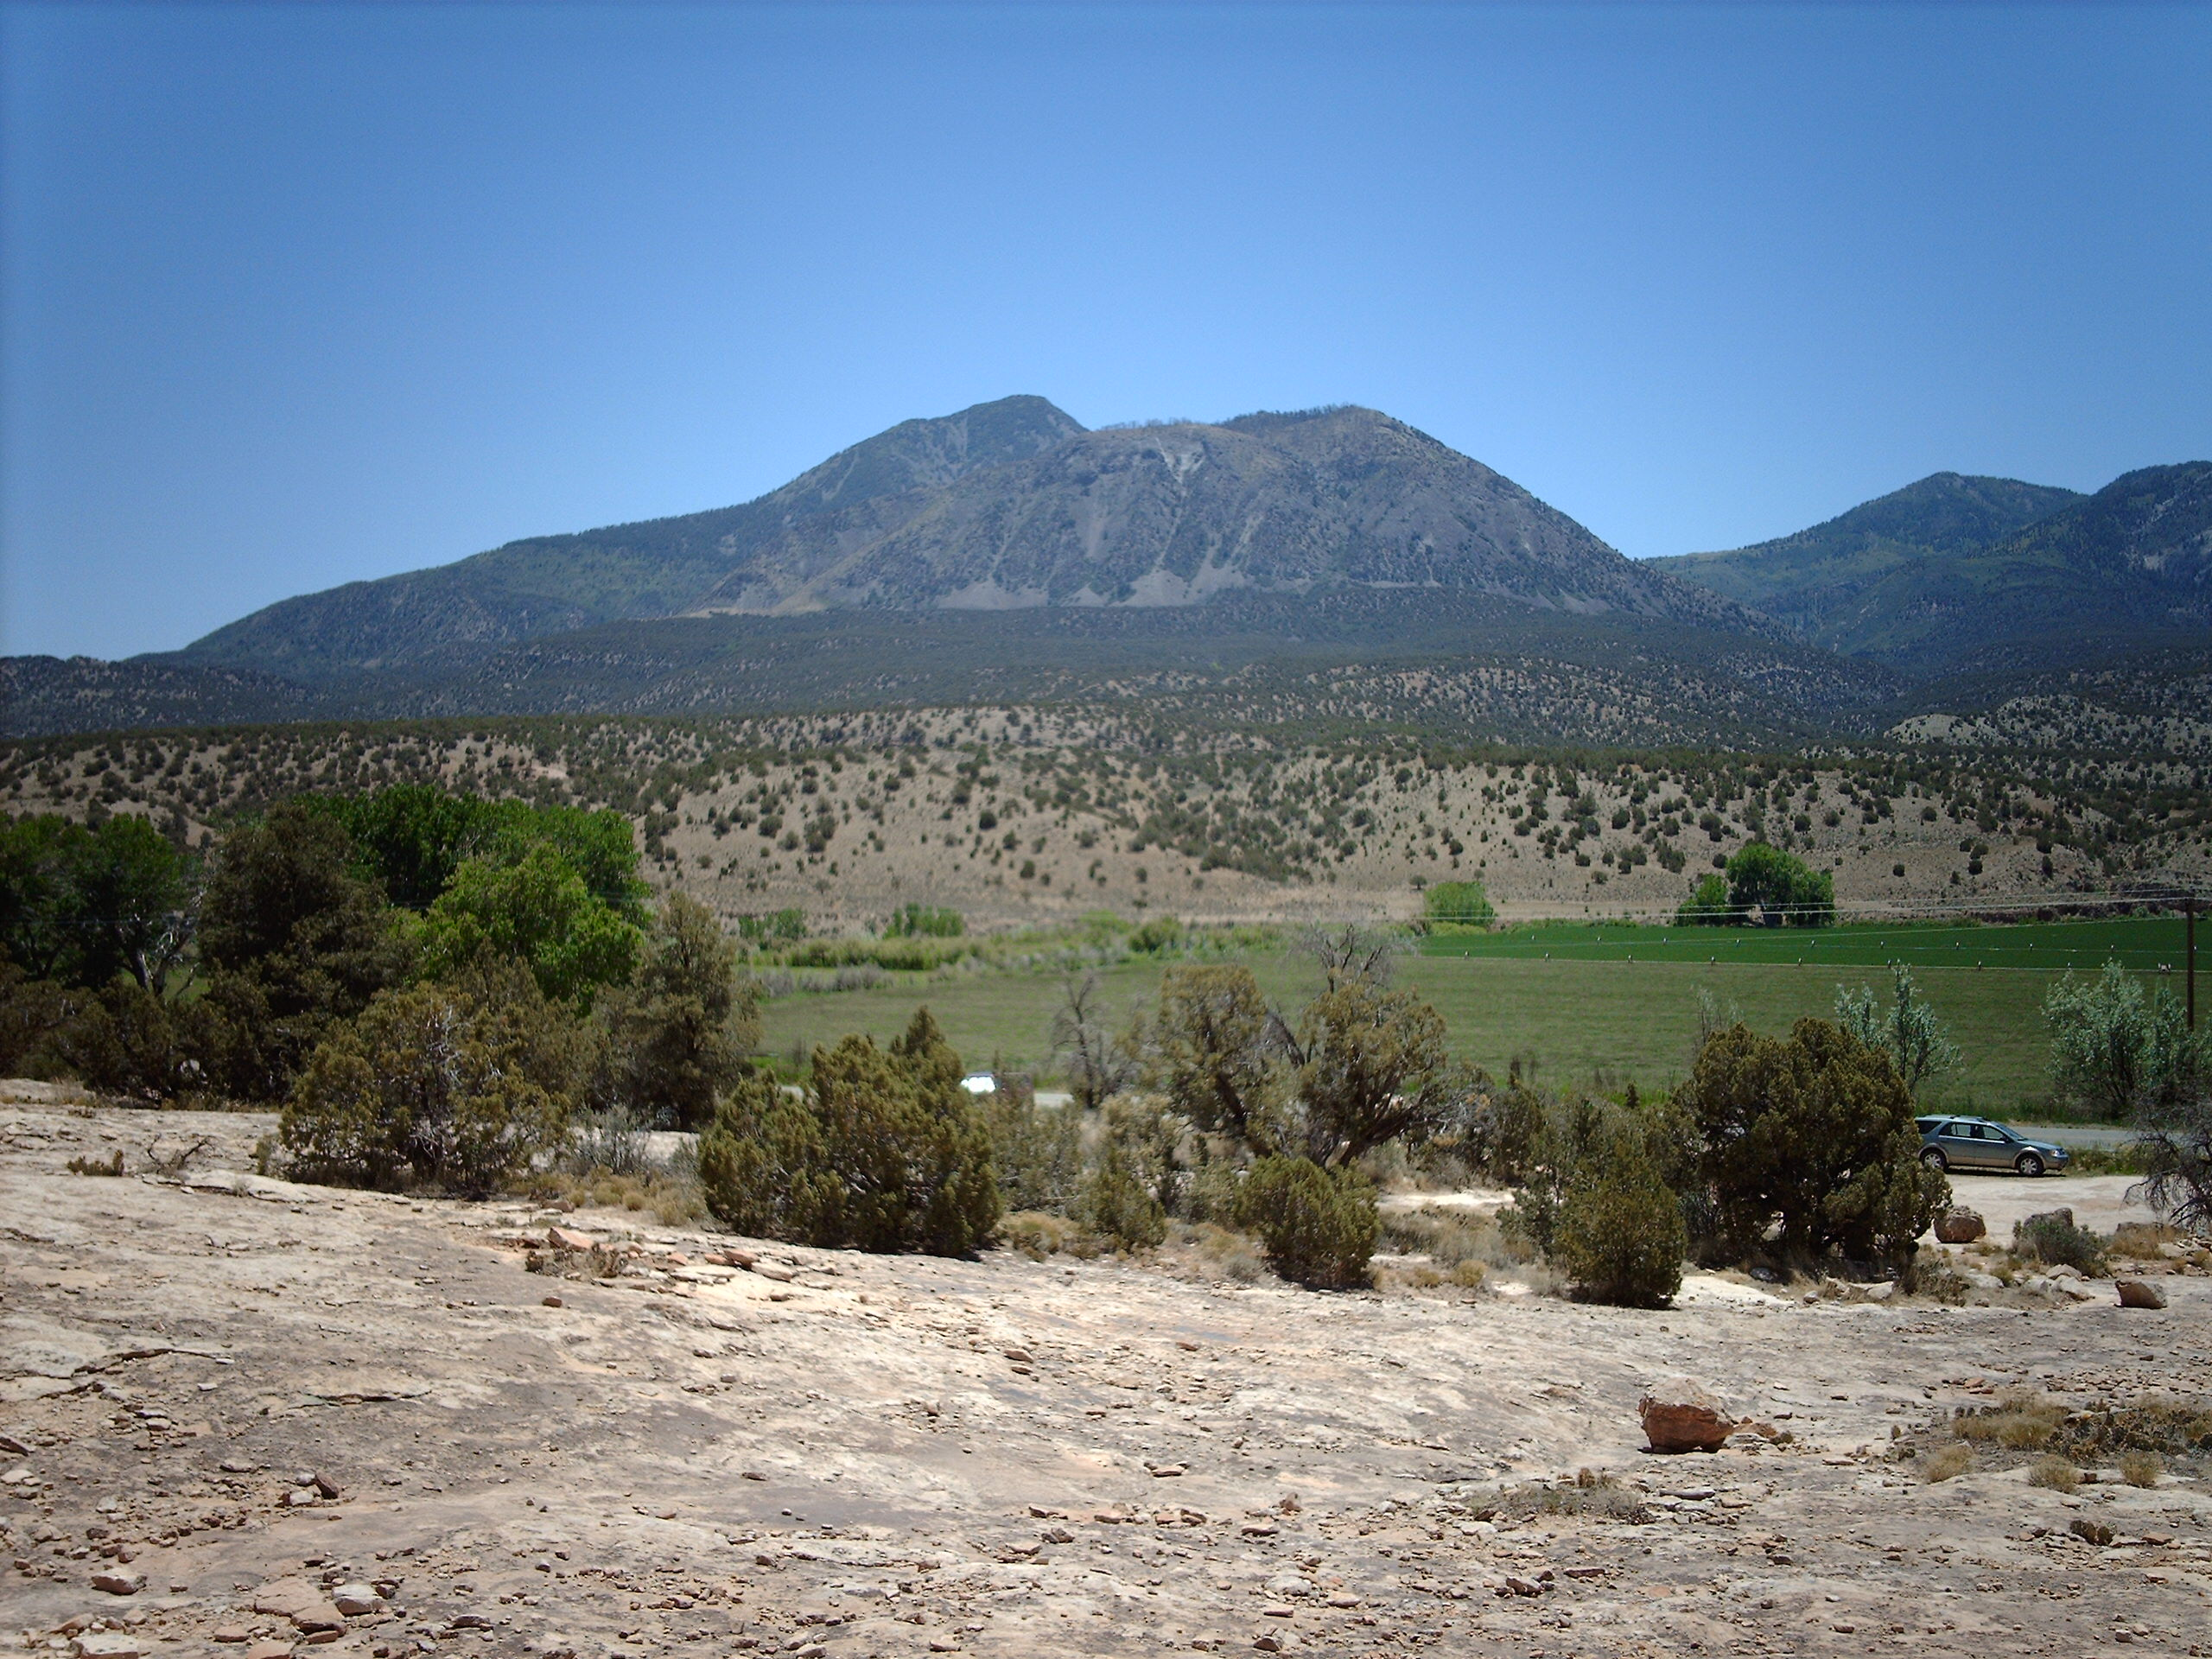 Ute Mountain Ute Tribe cites interest from marijuana industry